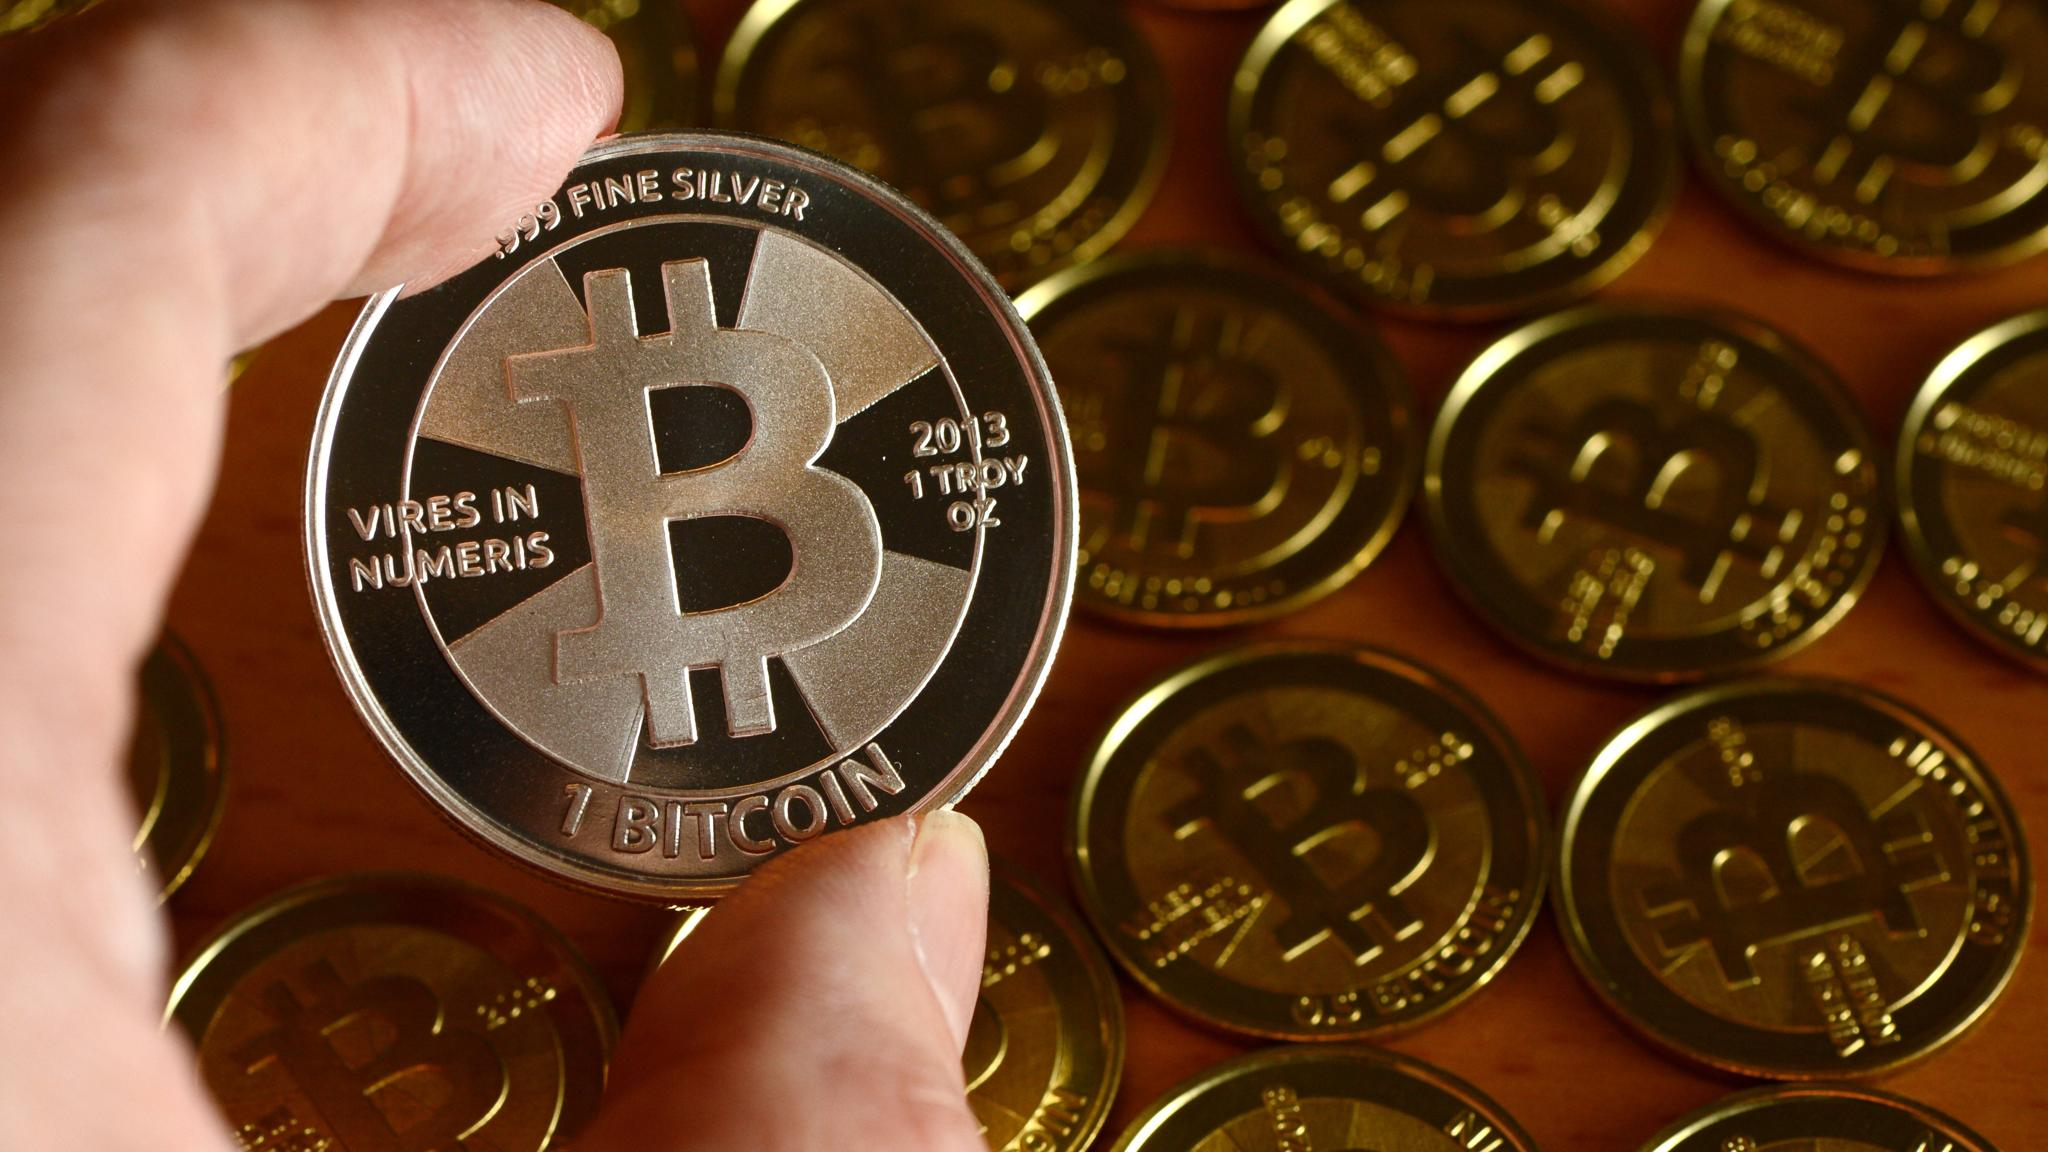 Bitcoin bounces back in China to top $1,000 | Financial Times